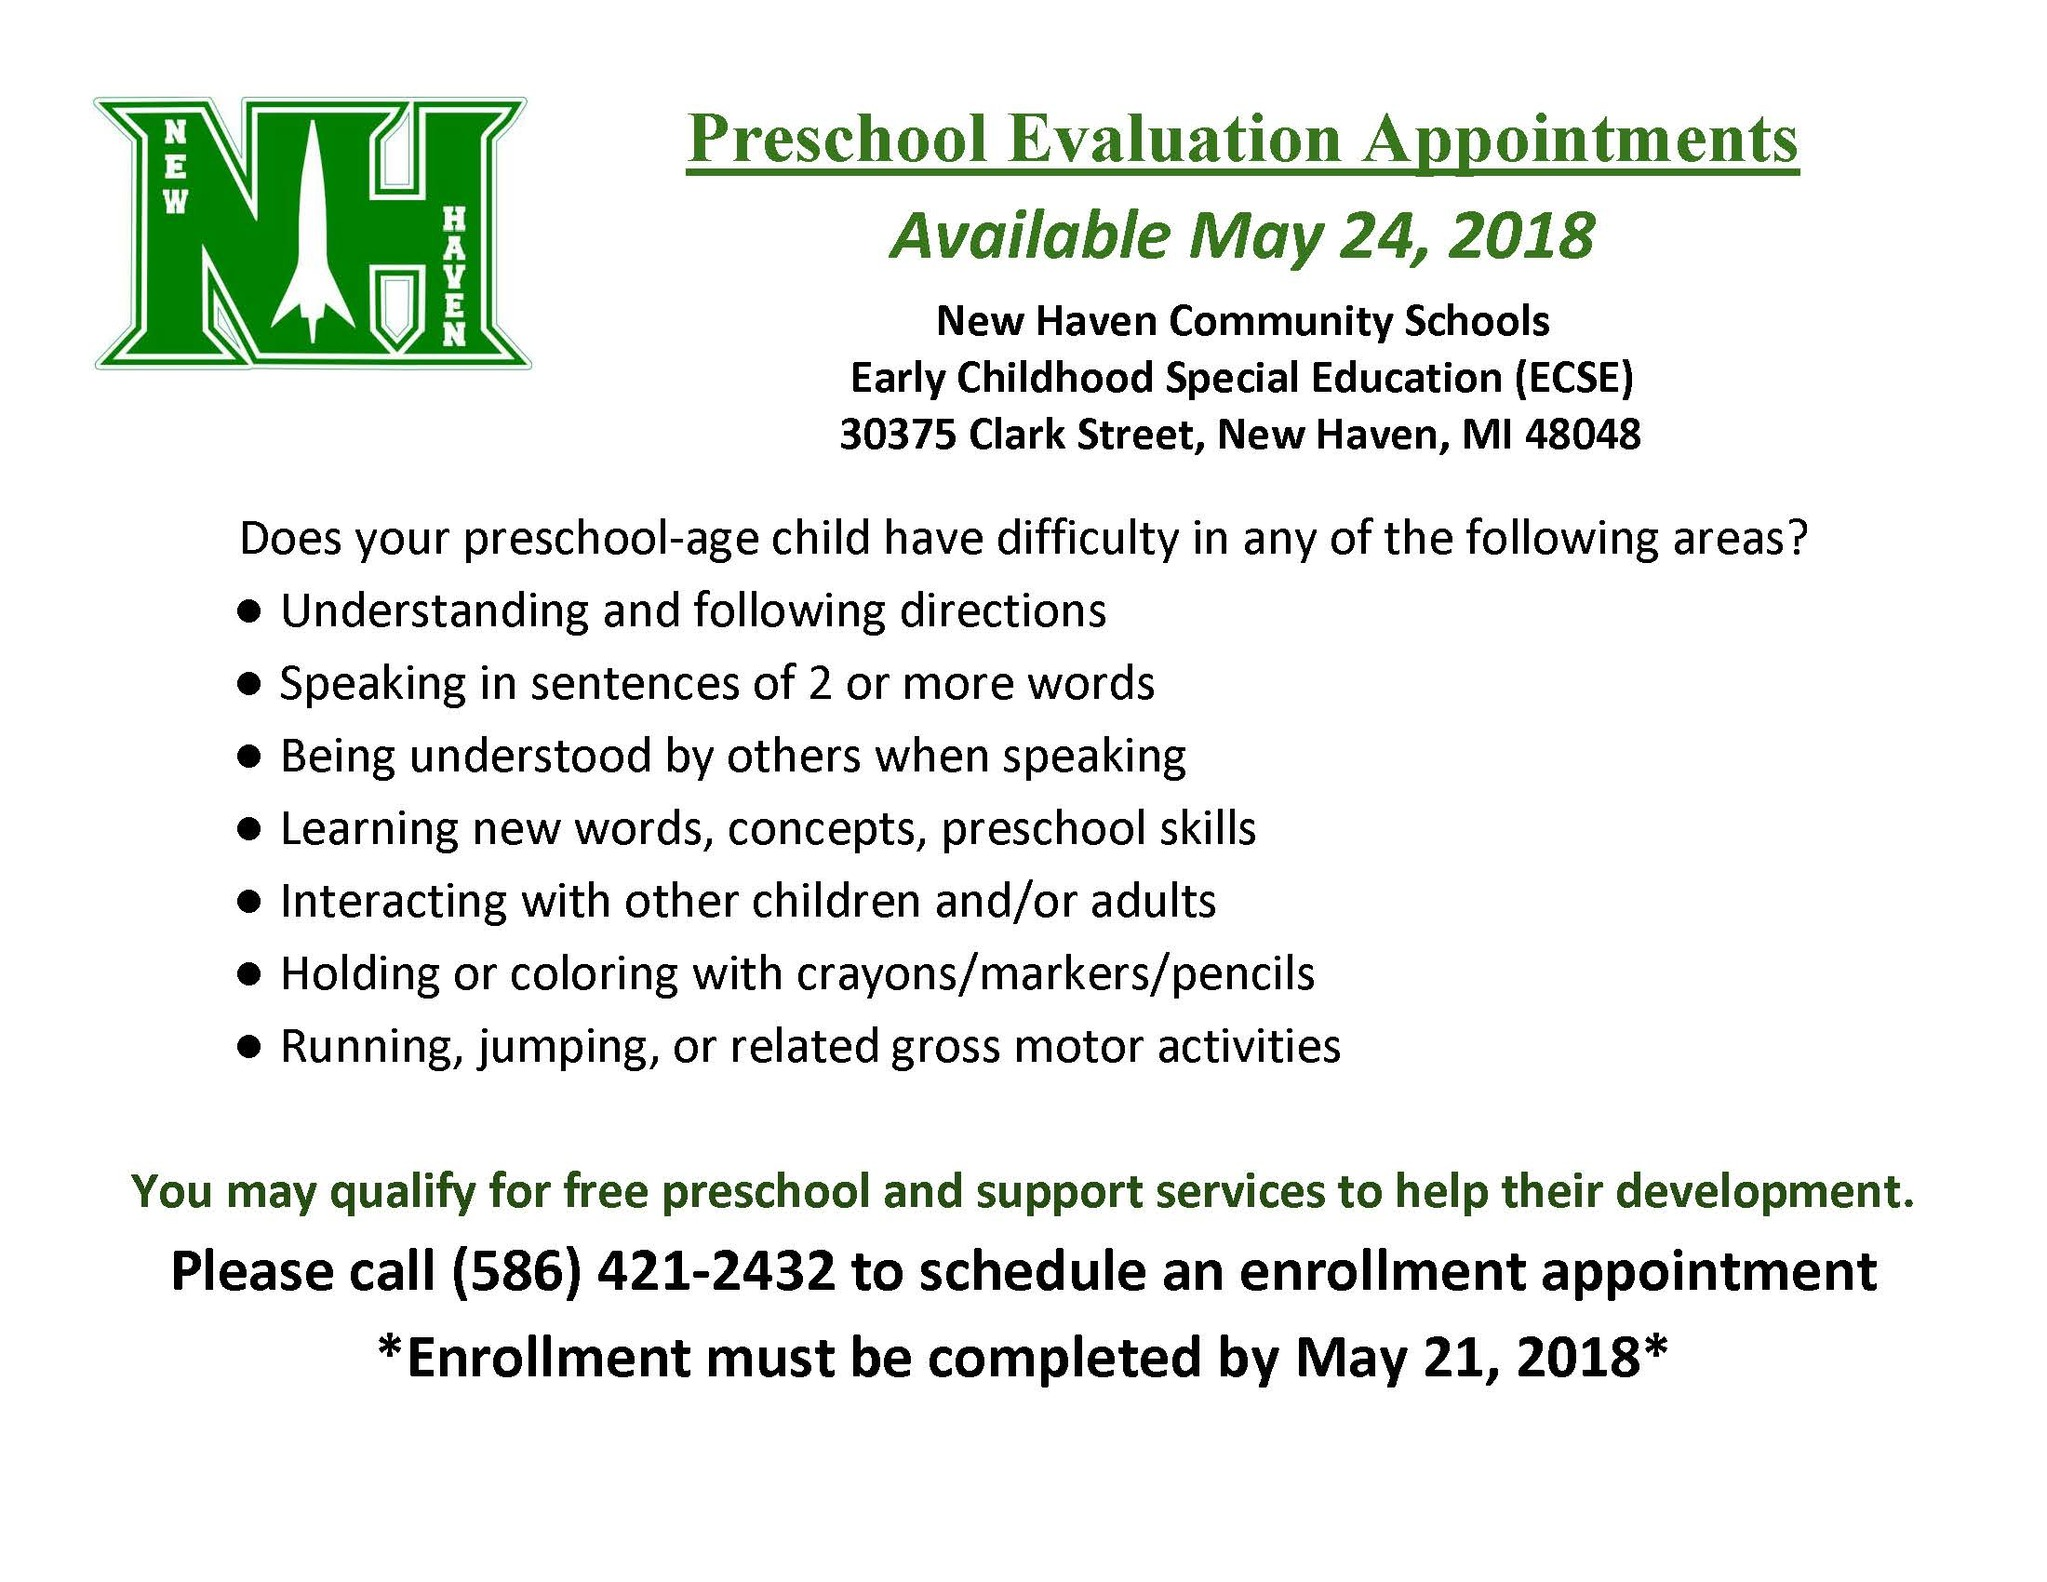 Preschool Evaluation Announcement